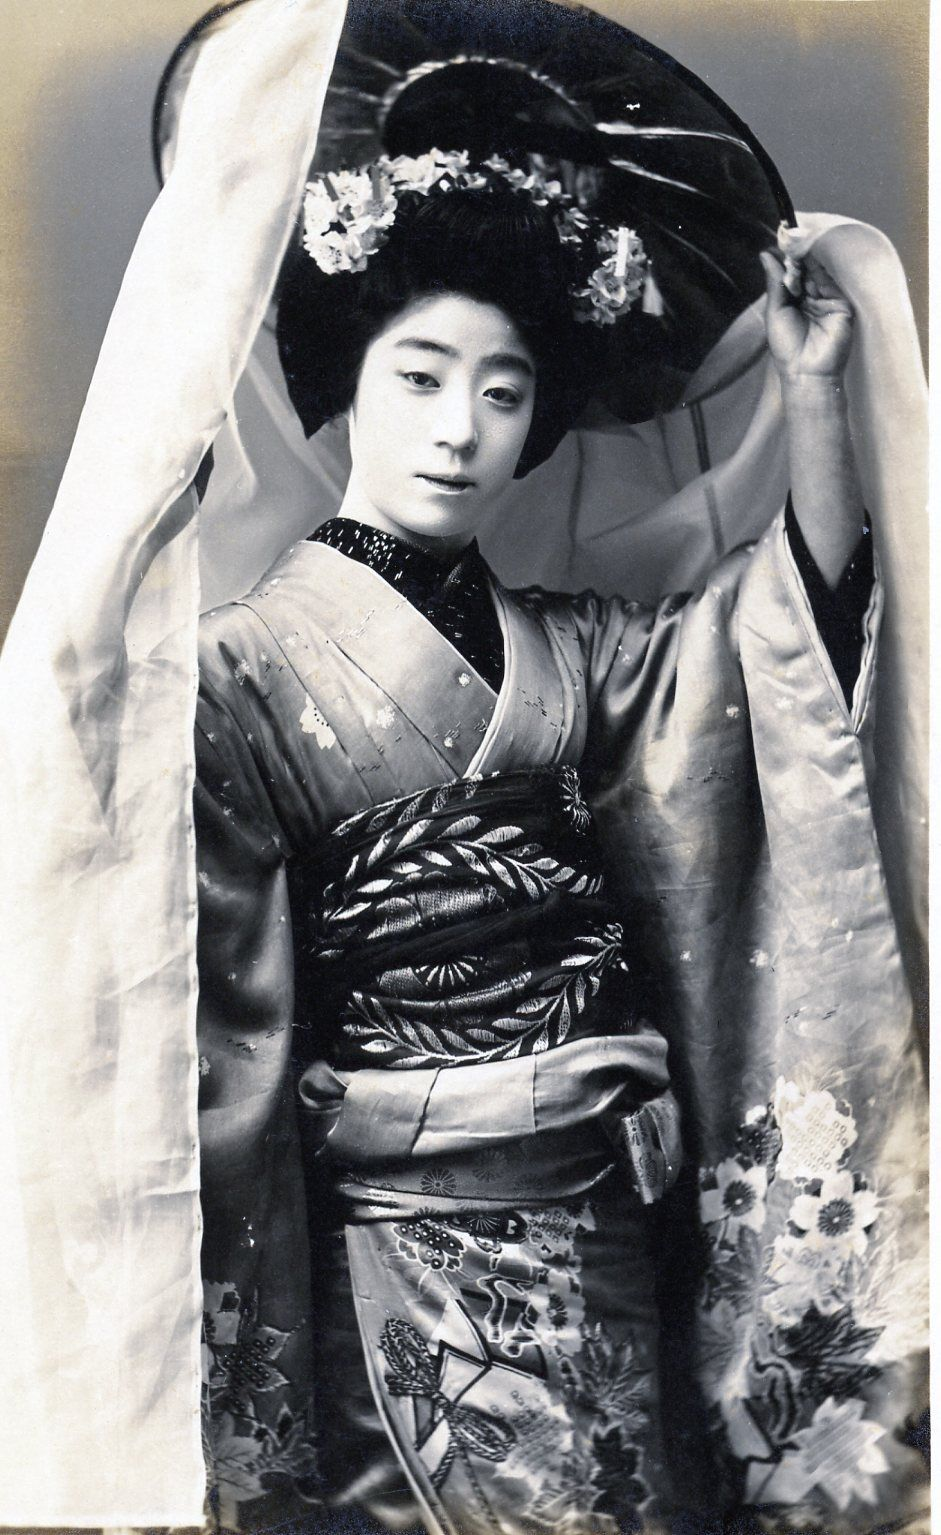 Date unknown. Japan. S)